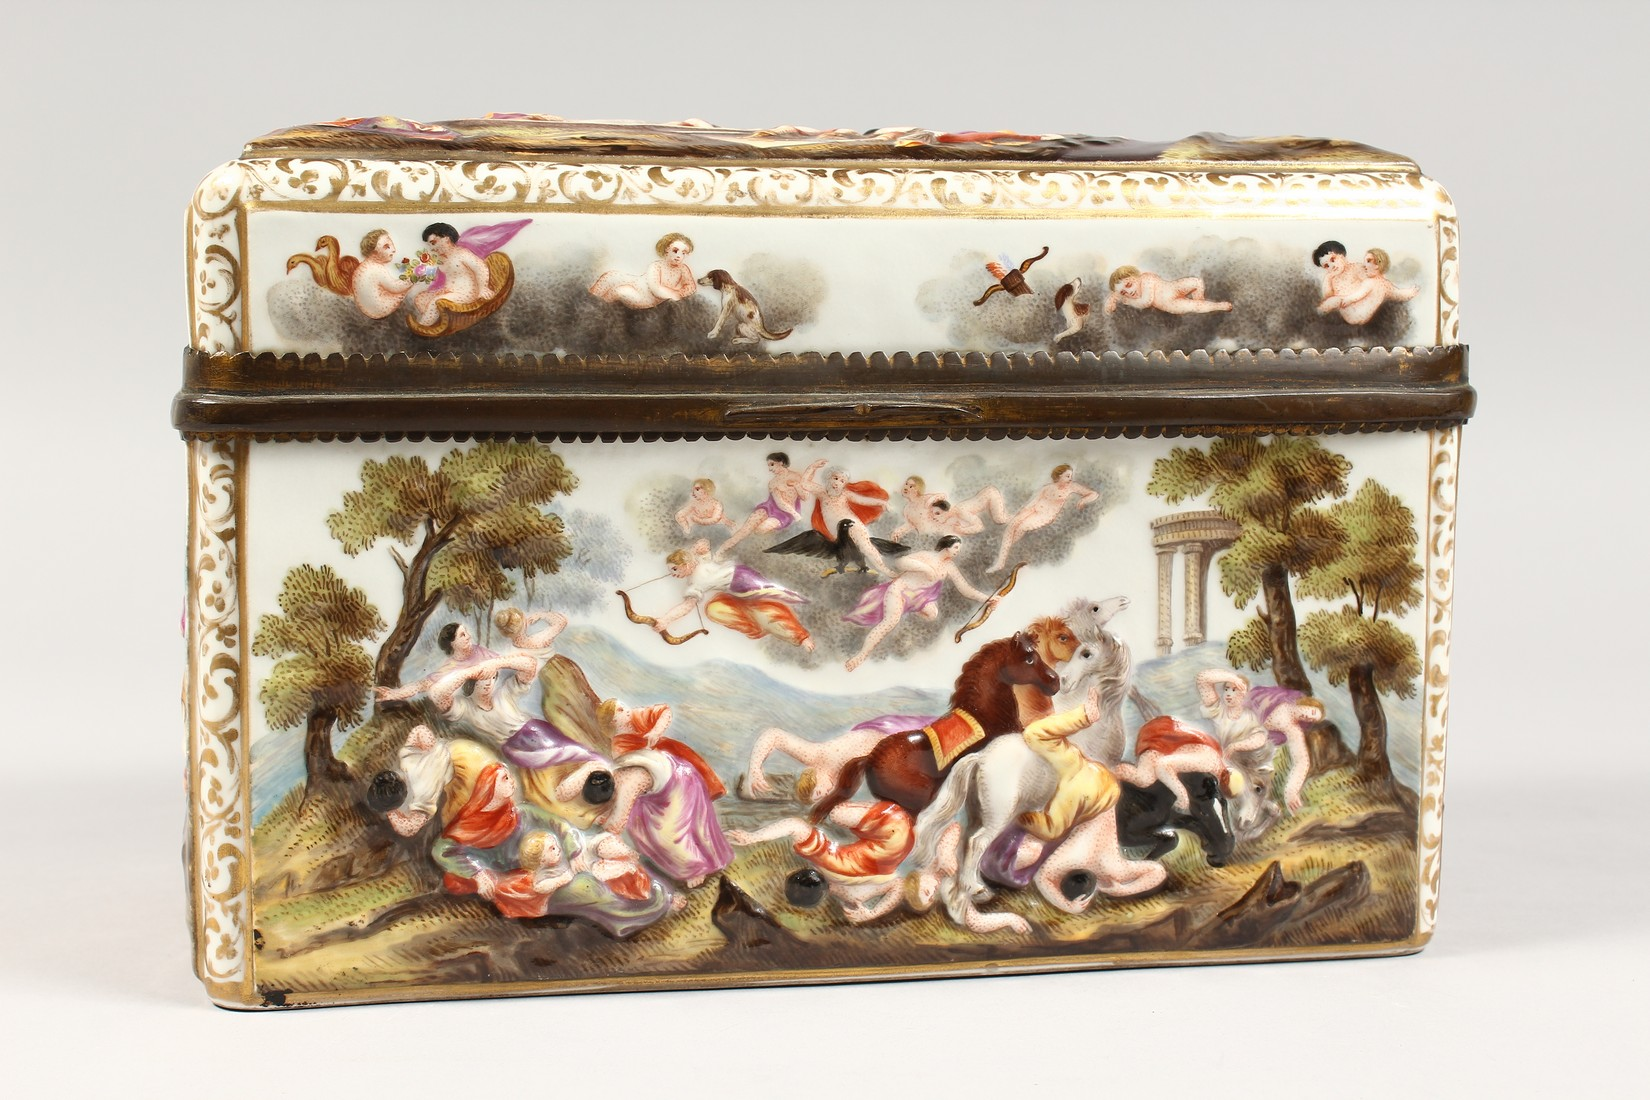 A GOOD CAPODIMONTE CASKET with classical figures in relief 9.5 ins wide. - Image 2 of 8